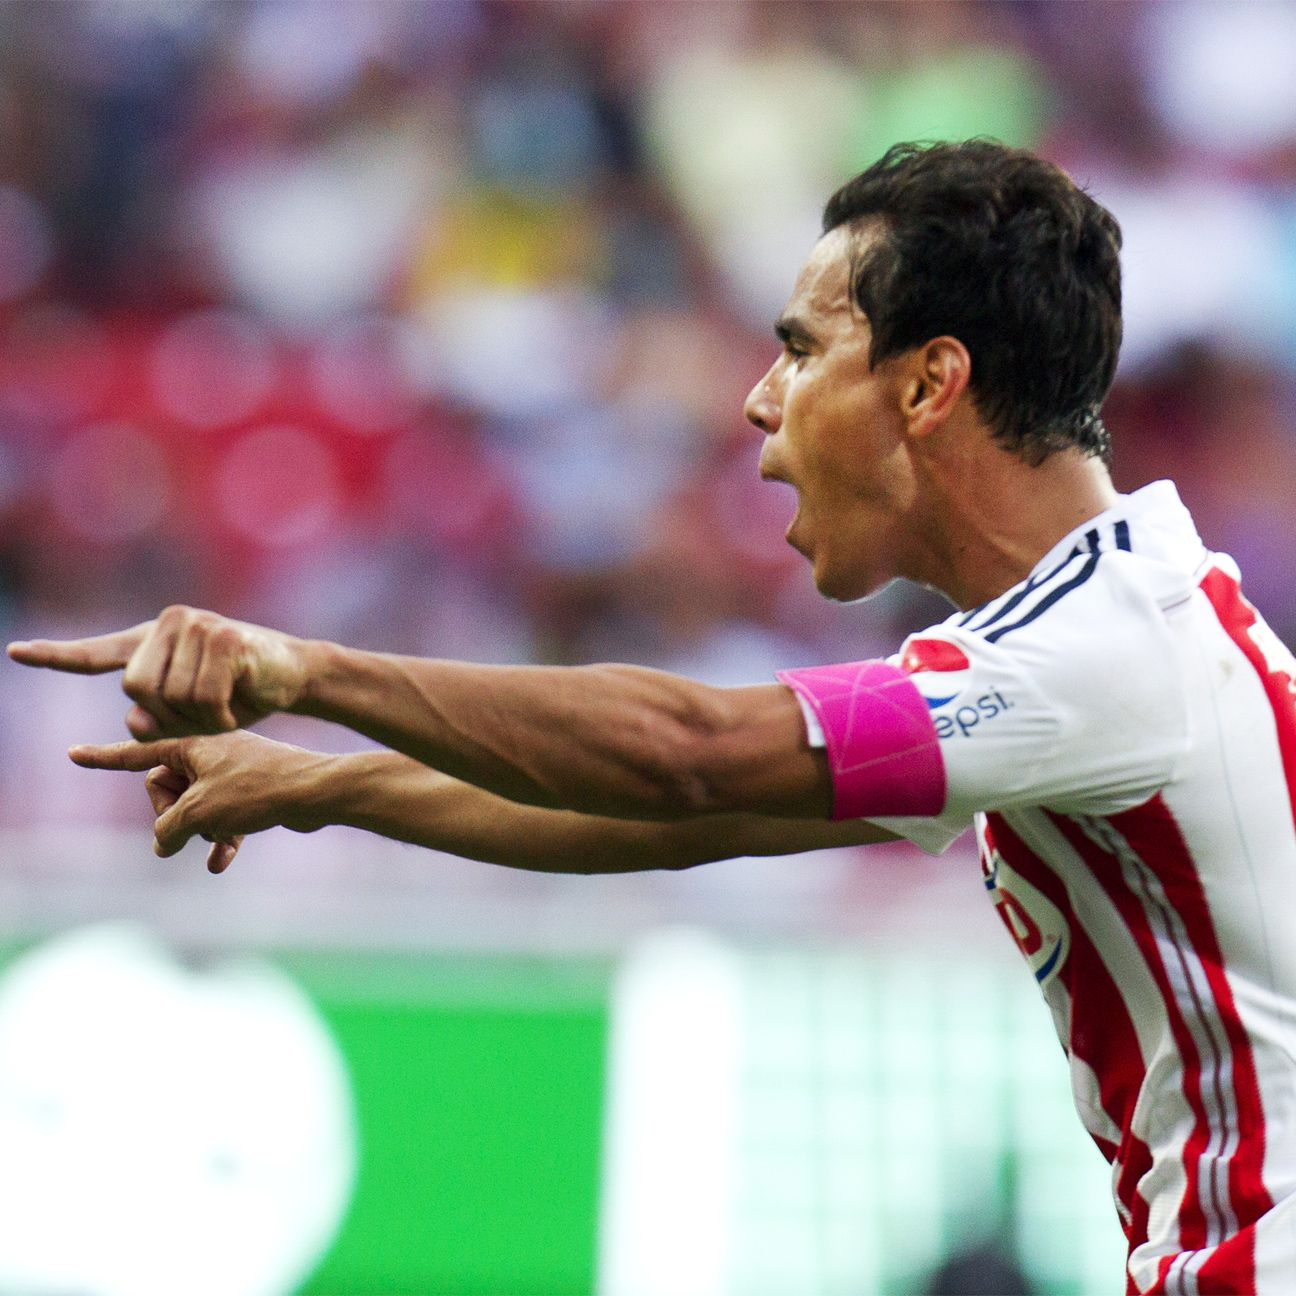 Omar Bravo awoke from his slumber to score twice in Chivas' 3-3 draw with Xolos.